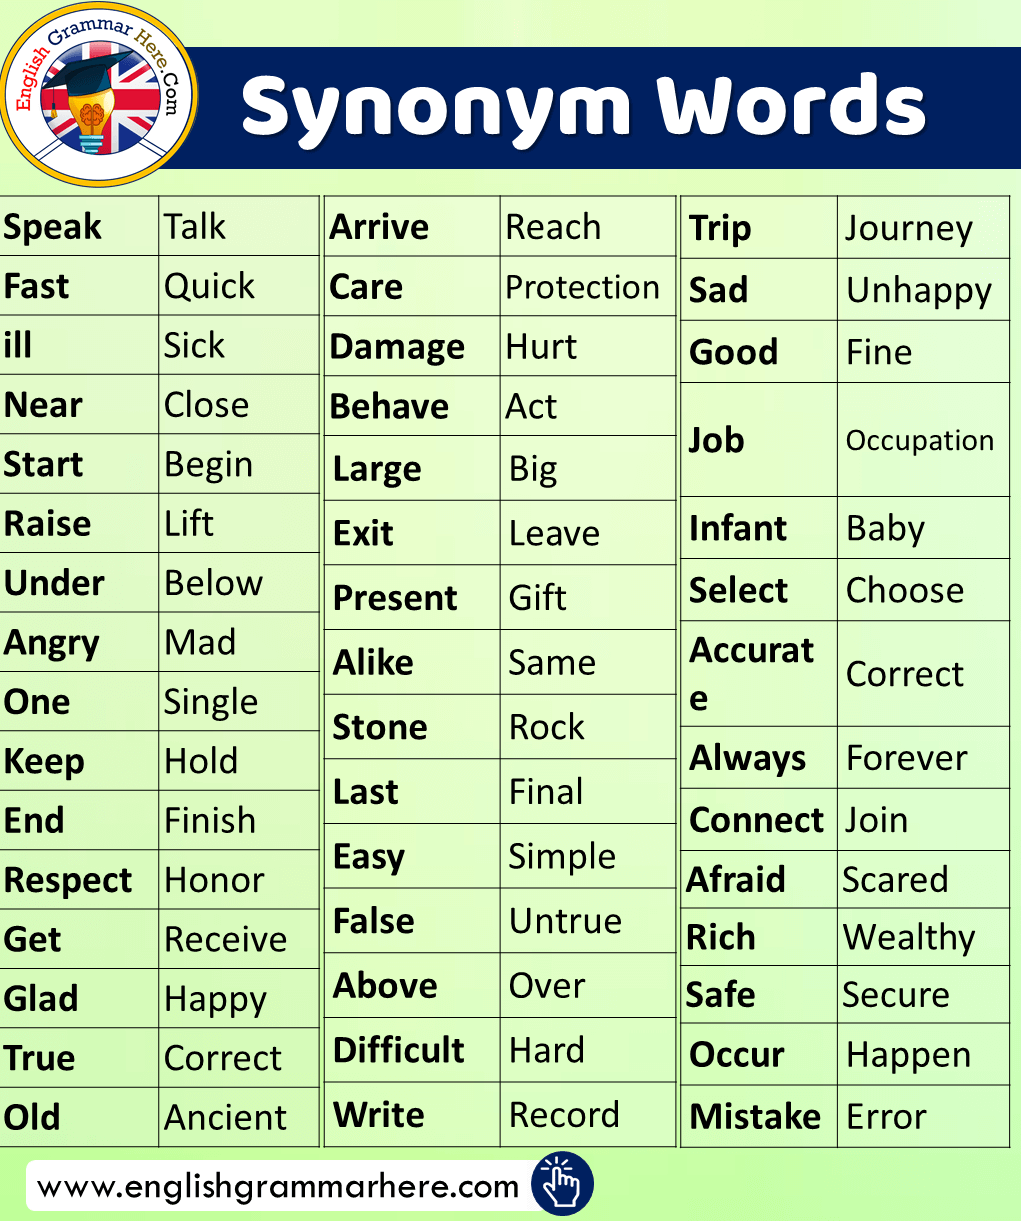 English Synonym Words List